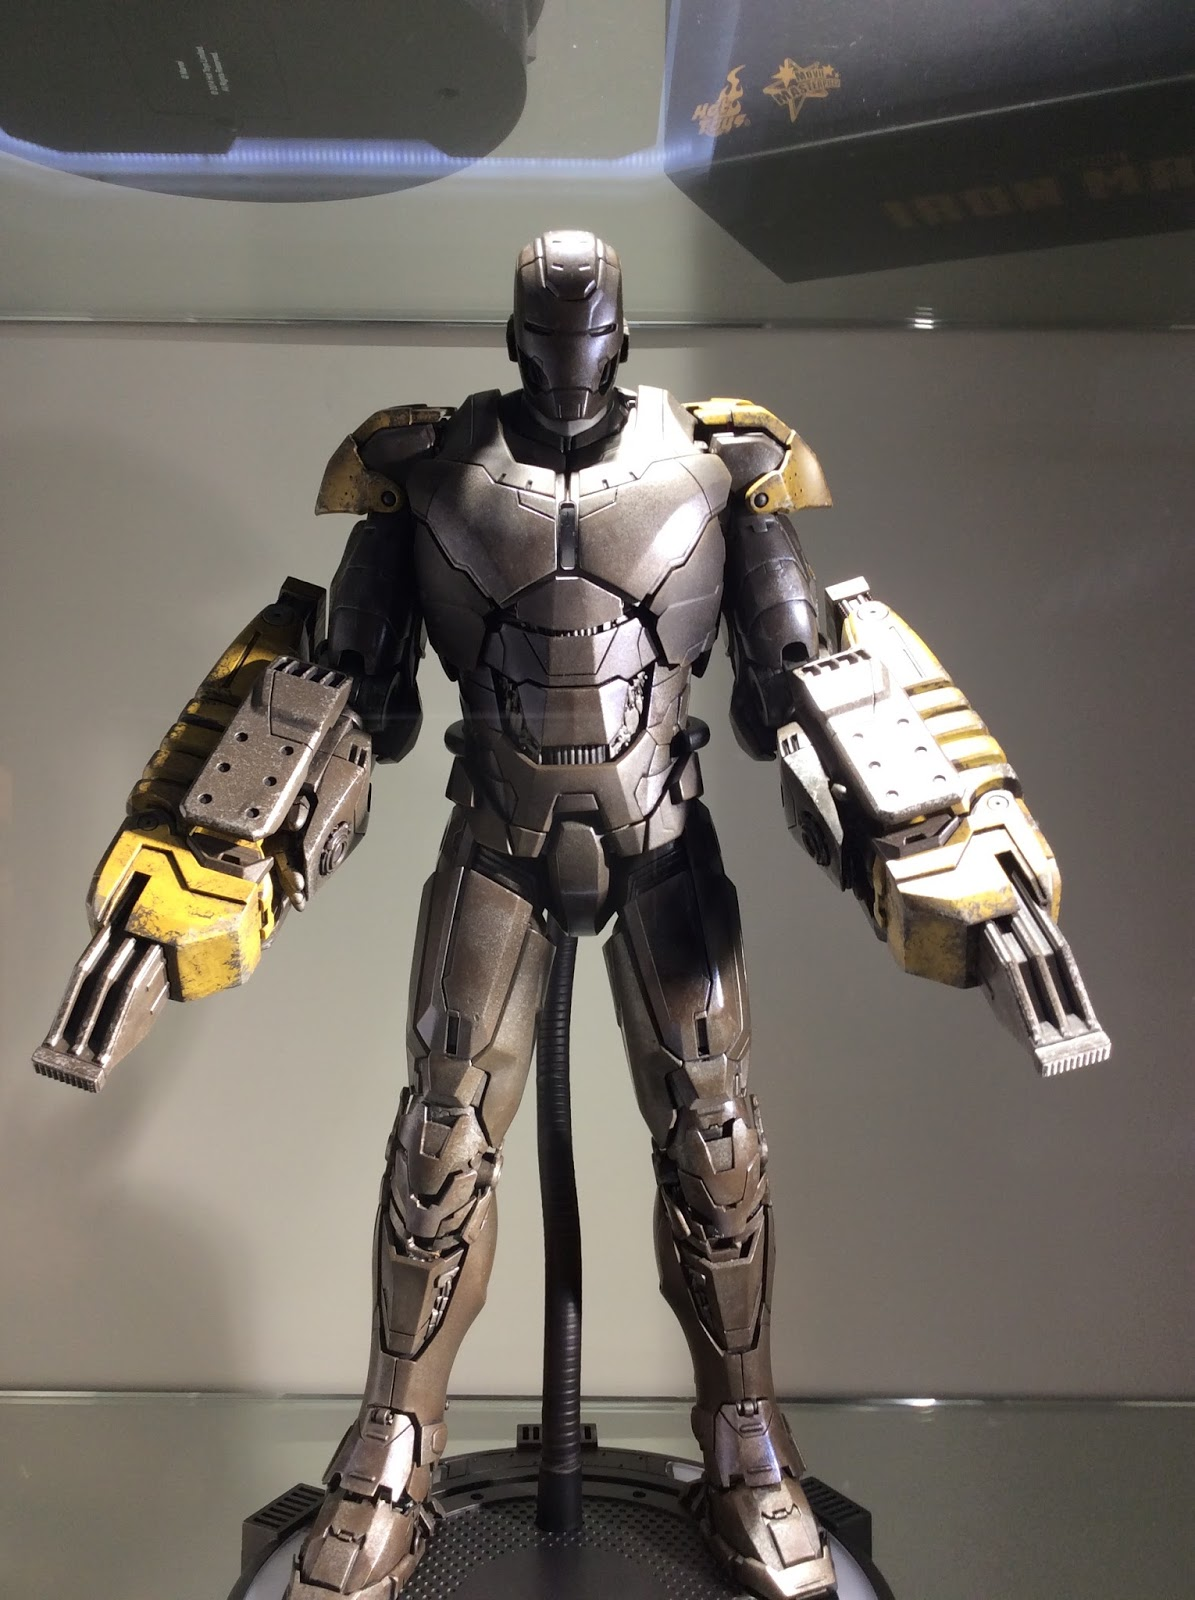 Iron Man Mark 25 Striker Commando John Matrix Hot Toys Secret 1730 500 2015